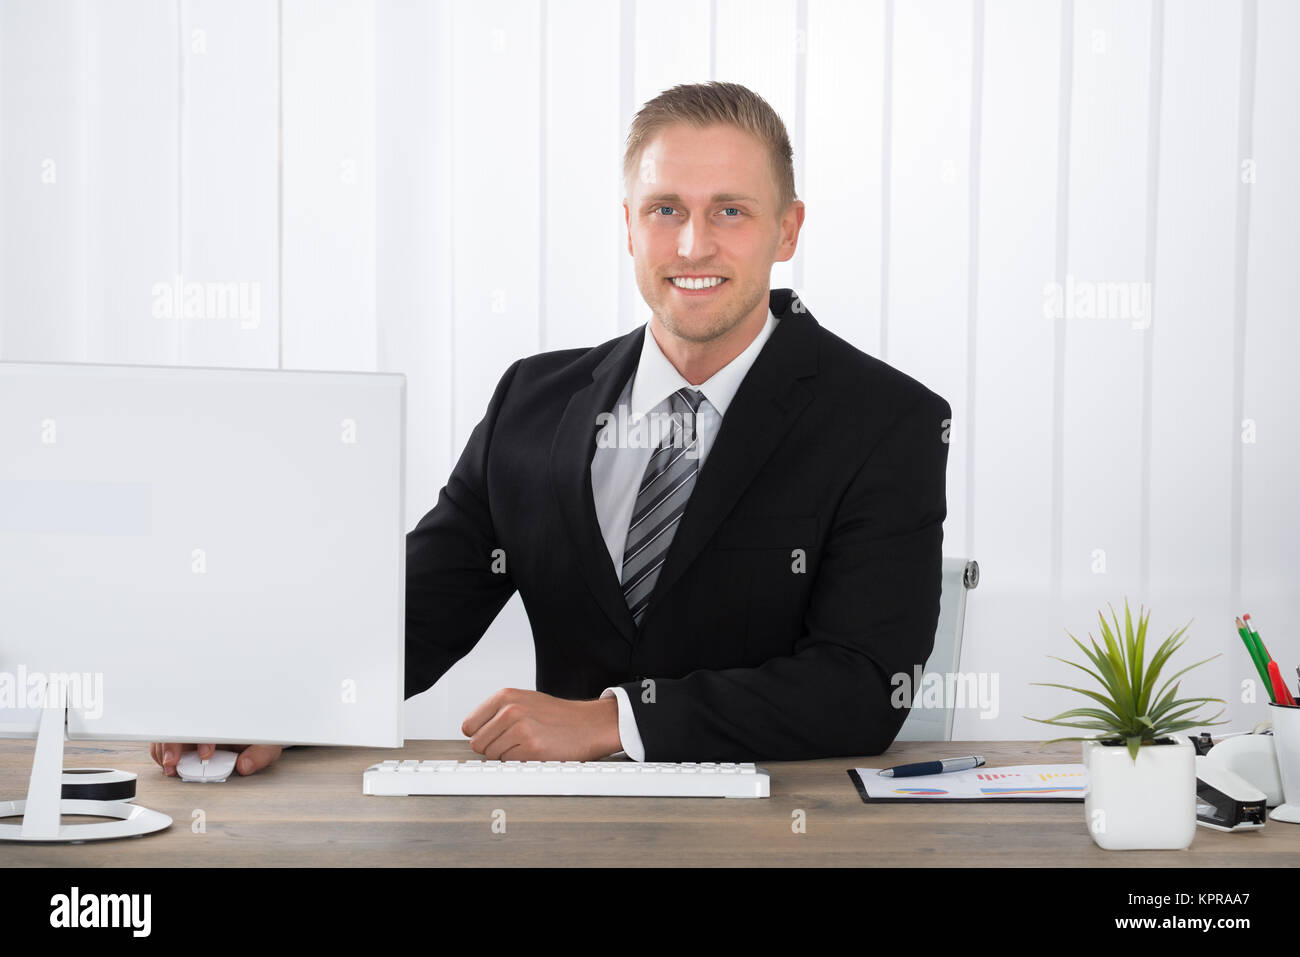 Businessman Smiling At Work In Office - Stock Image